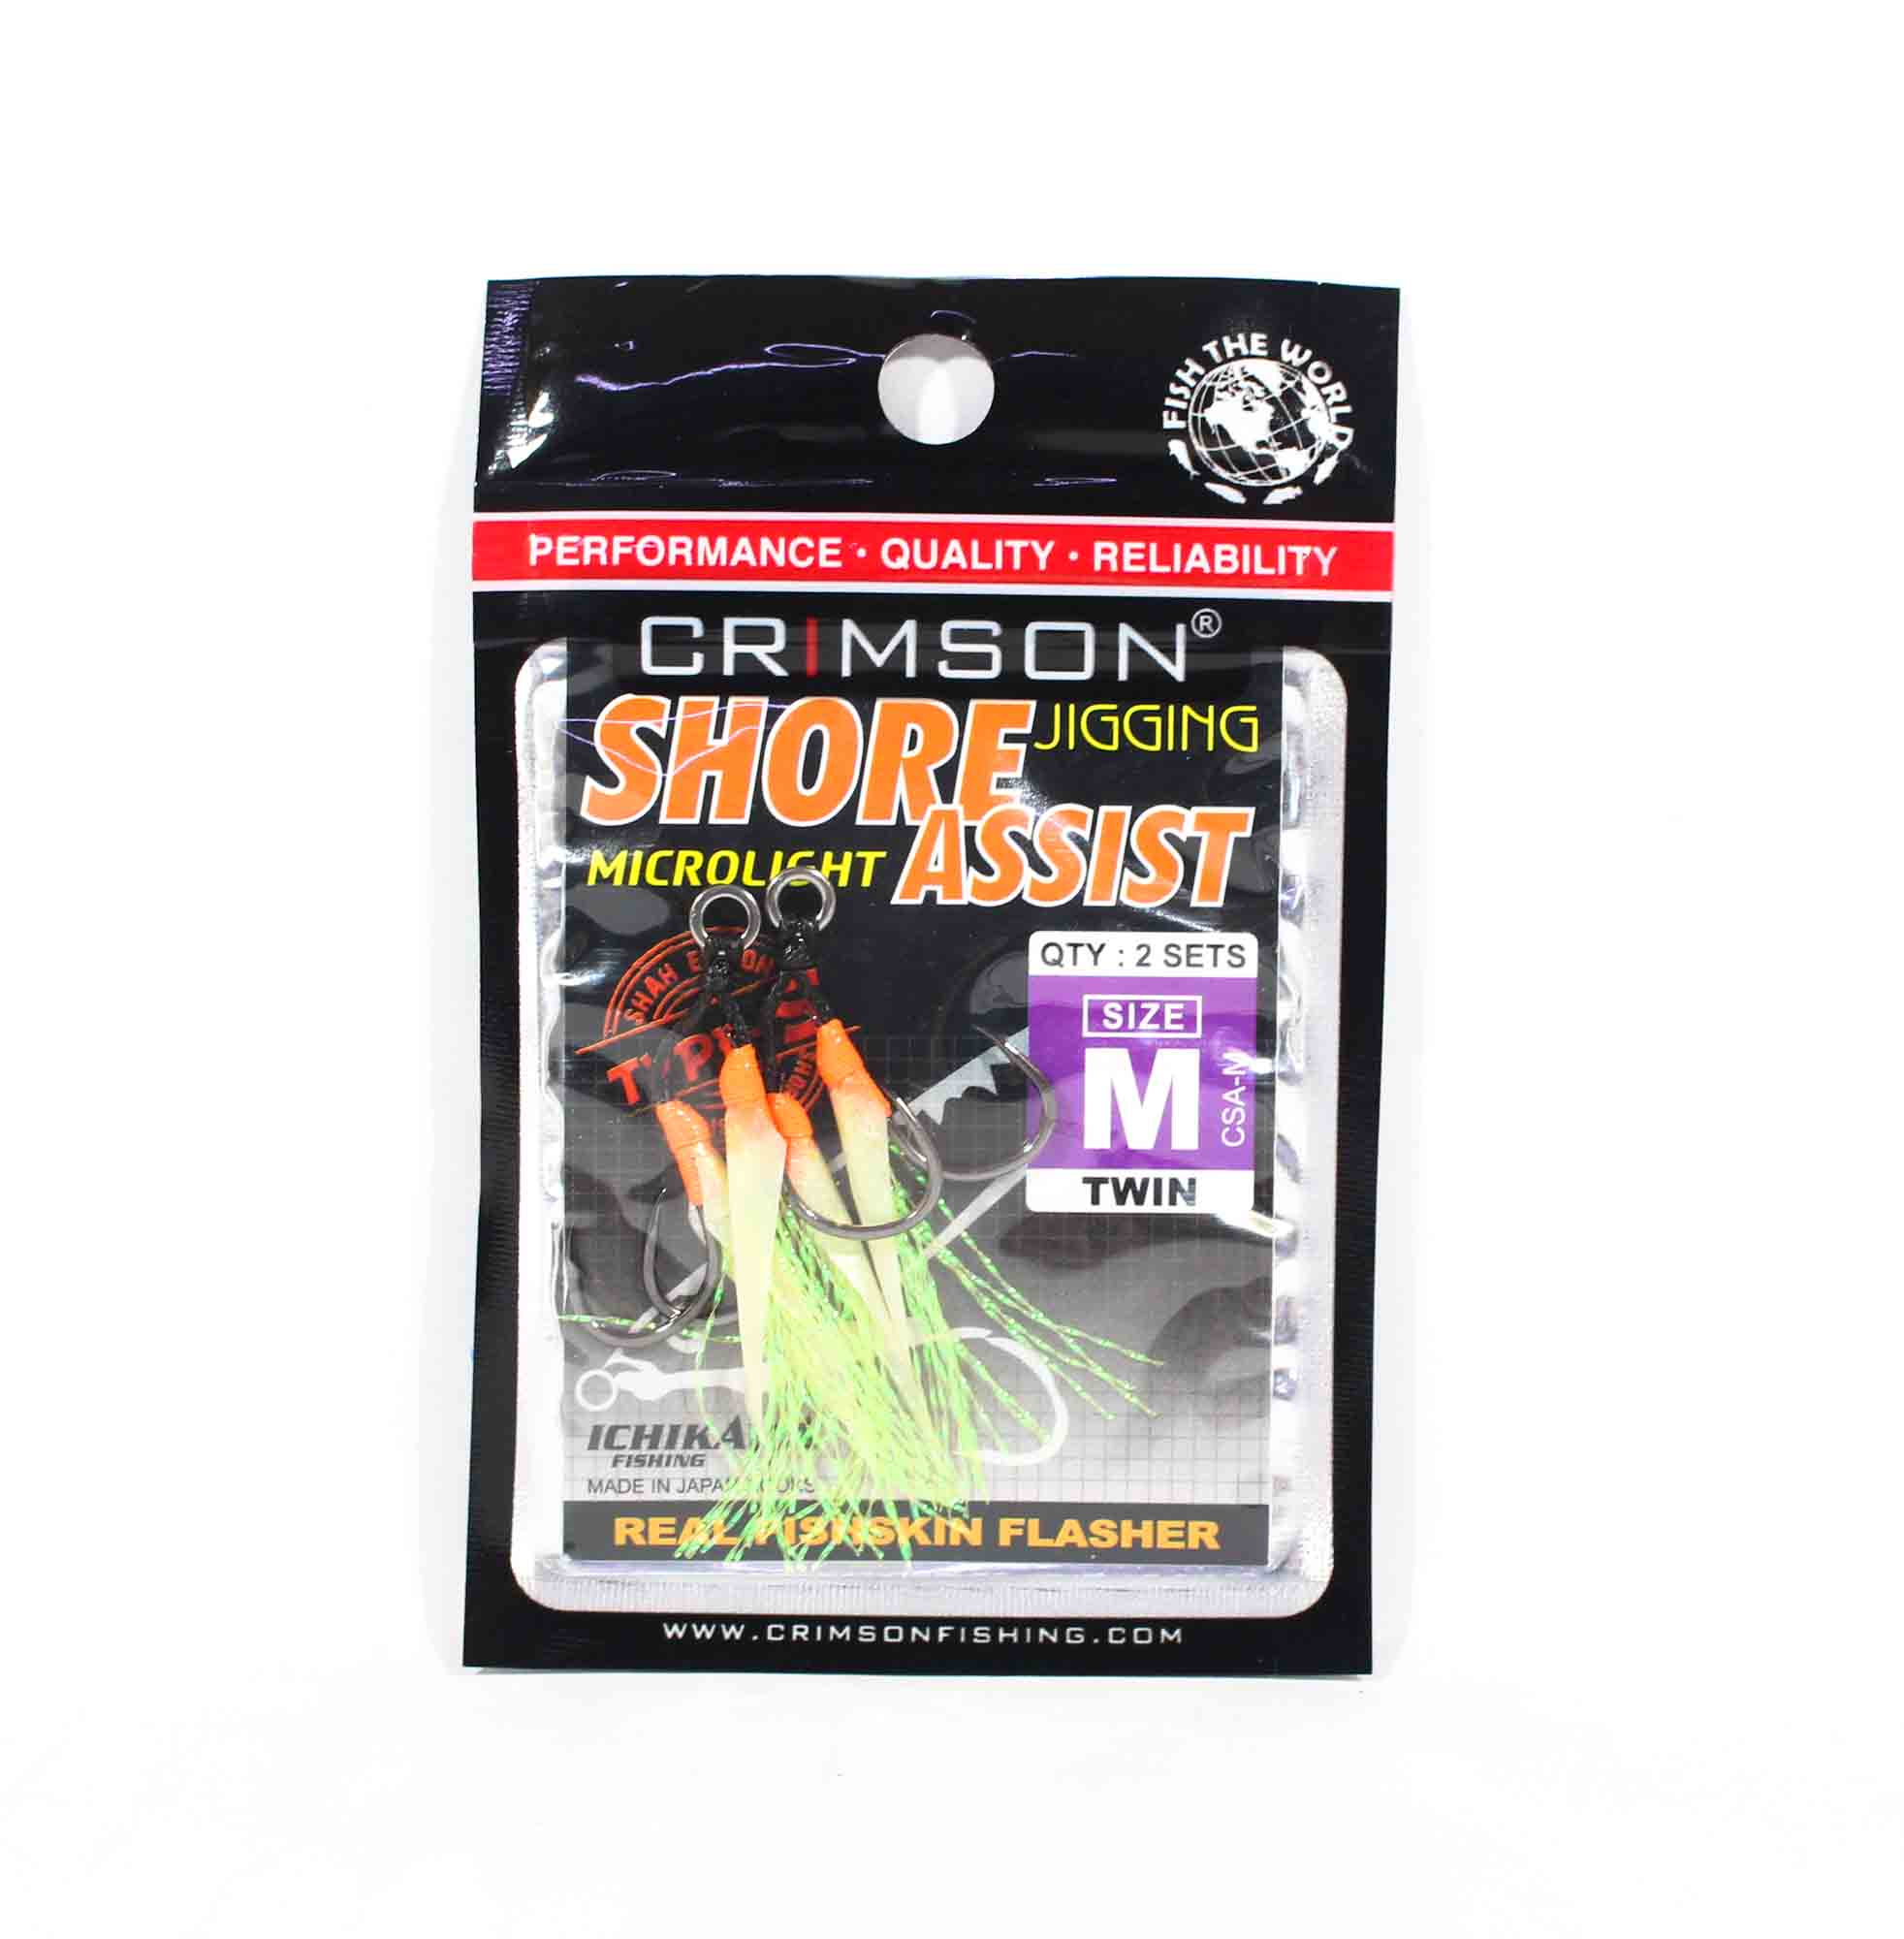 Crimson CSA-M Shore Jigging Assist Hook Twin 2 per pack Size M (2587)